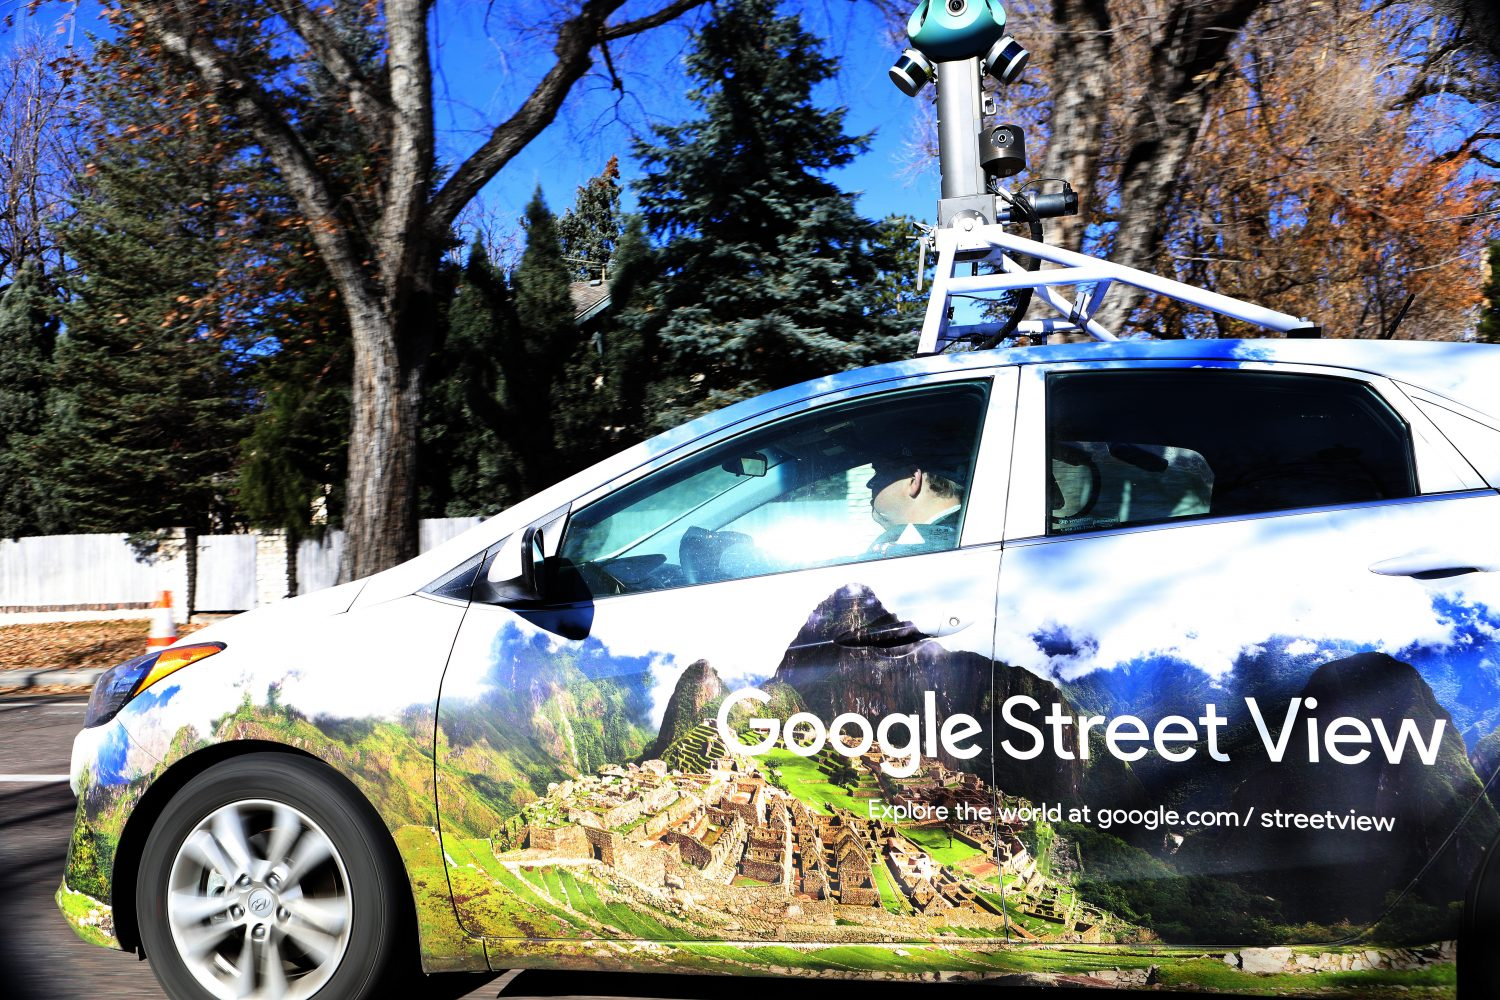 New Google Maps Feature Predicts Your Likelihood of a Car ... on google maps engine, google maps history, google maps weather, google street view car location, google maps caught on camera, google maps miles, google maps vehicle with camera,